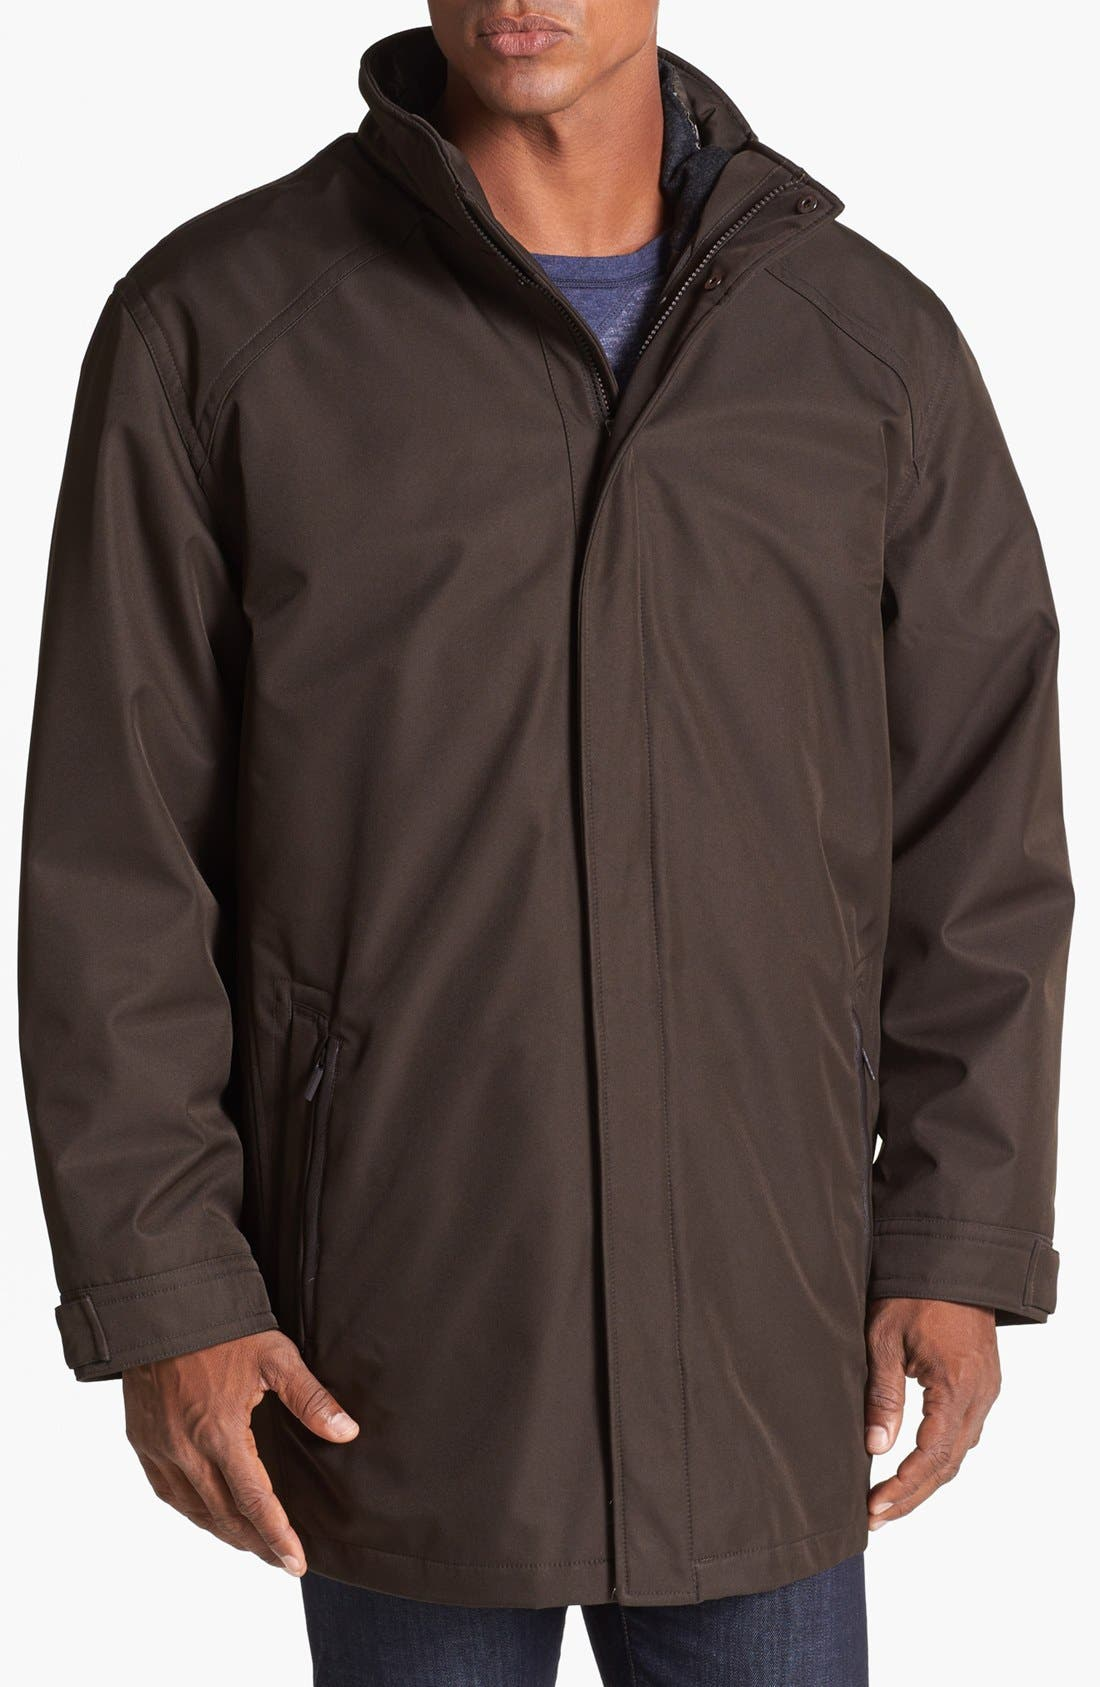 Main Image - RAINFOREST 3-in-1 Micro Twill Jacket